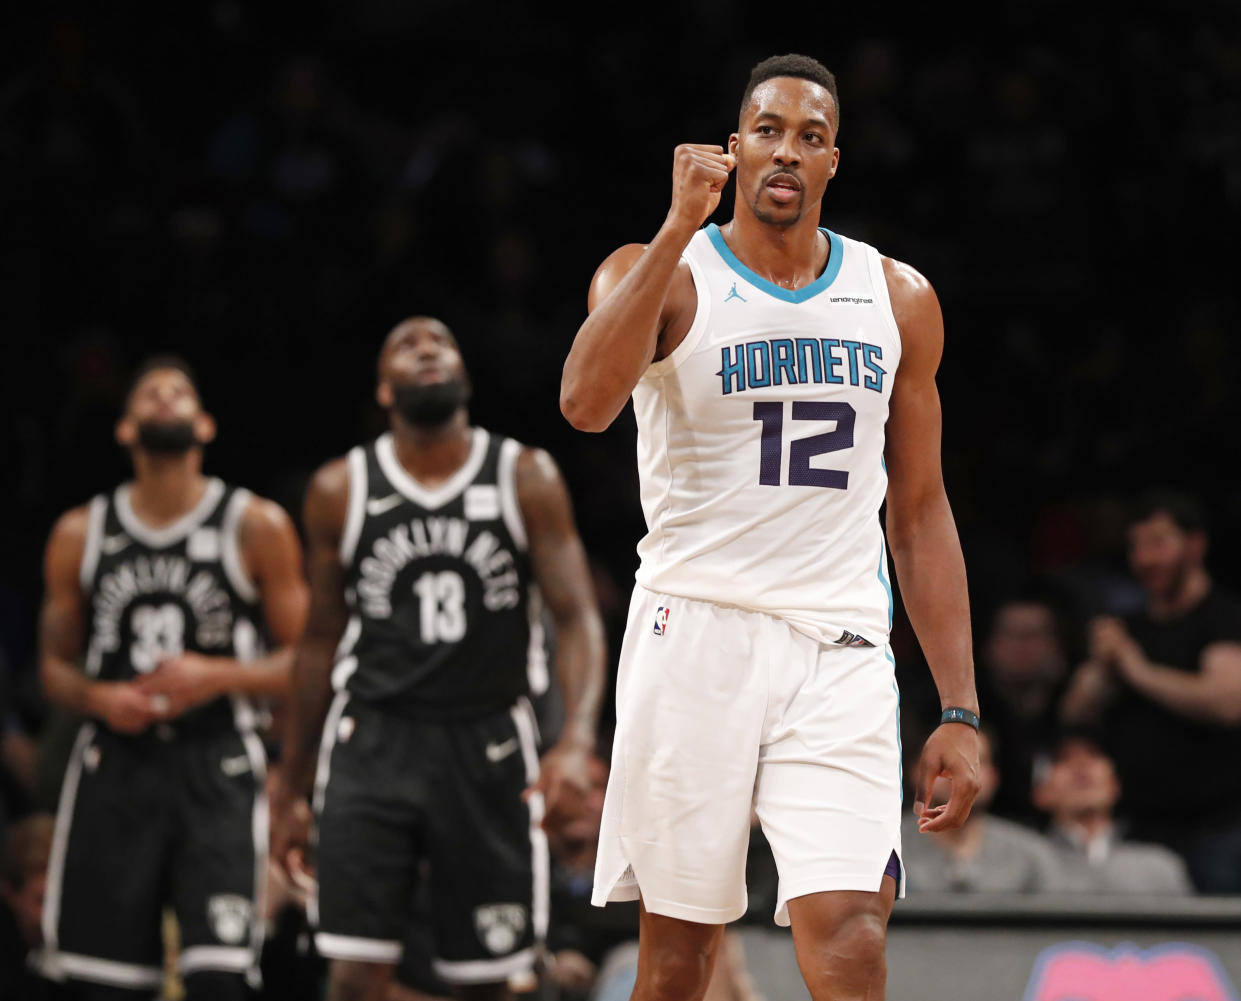 Dwight Howard, fresh off his 32 point, 30 rebound performance, will serve a one-game suspension on Thursday after picking up his 16th technical foul of the season. (AP Photo/Kathy Willens)